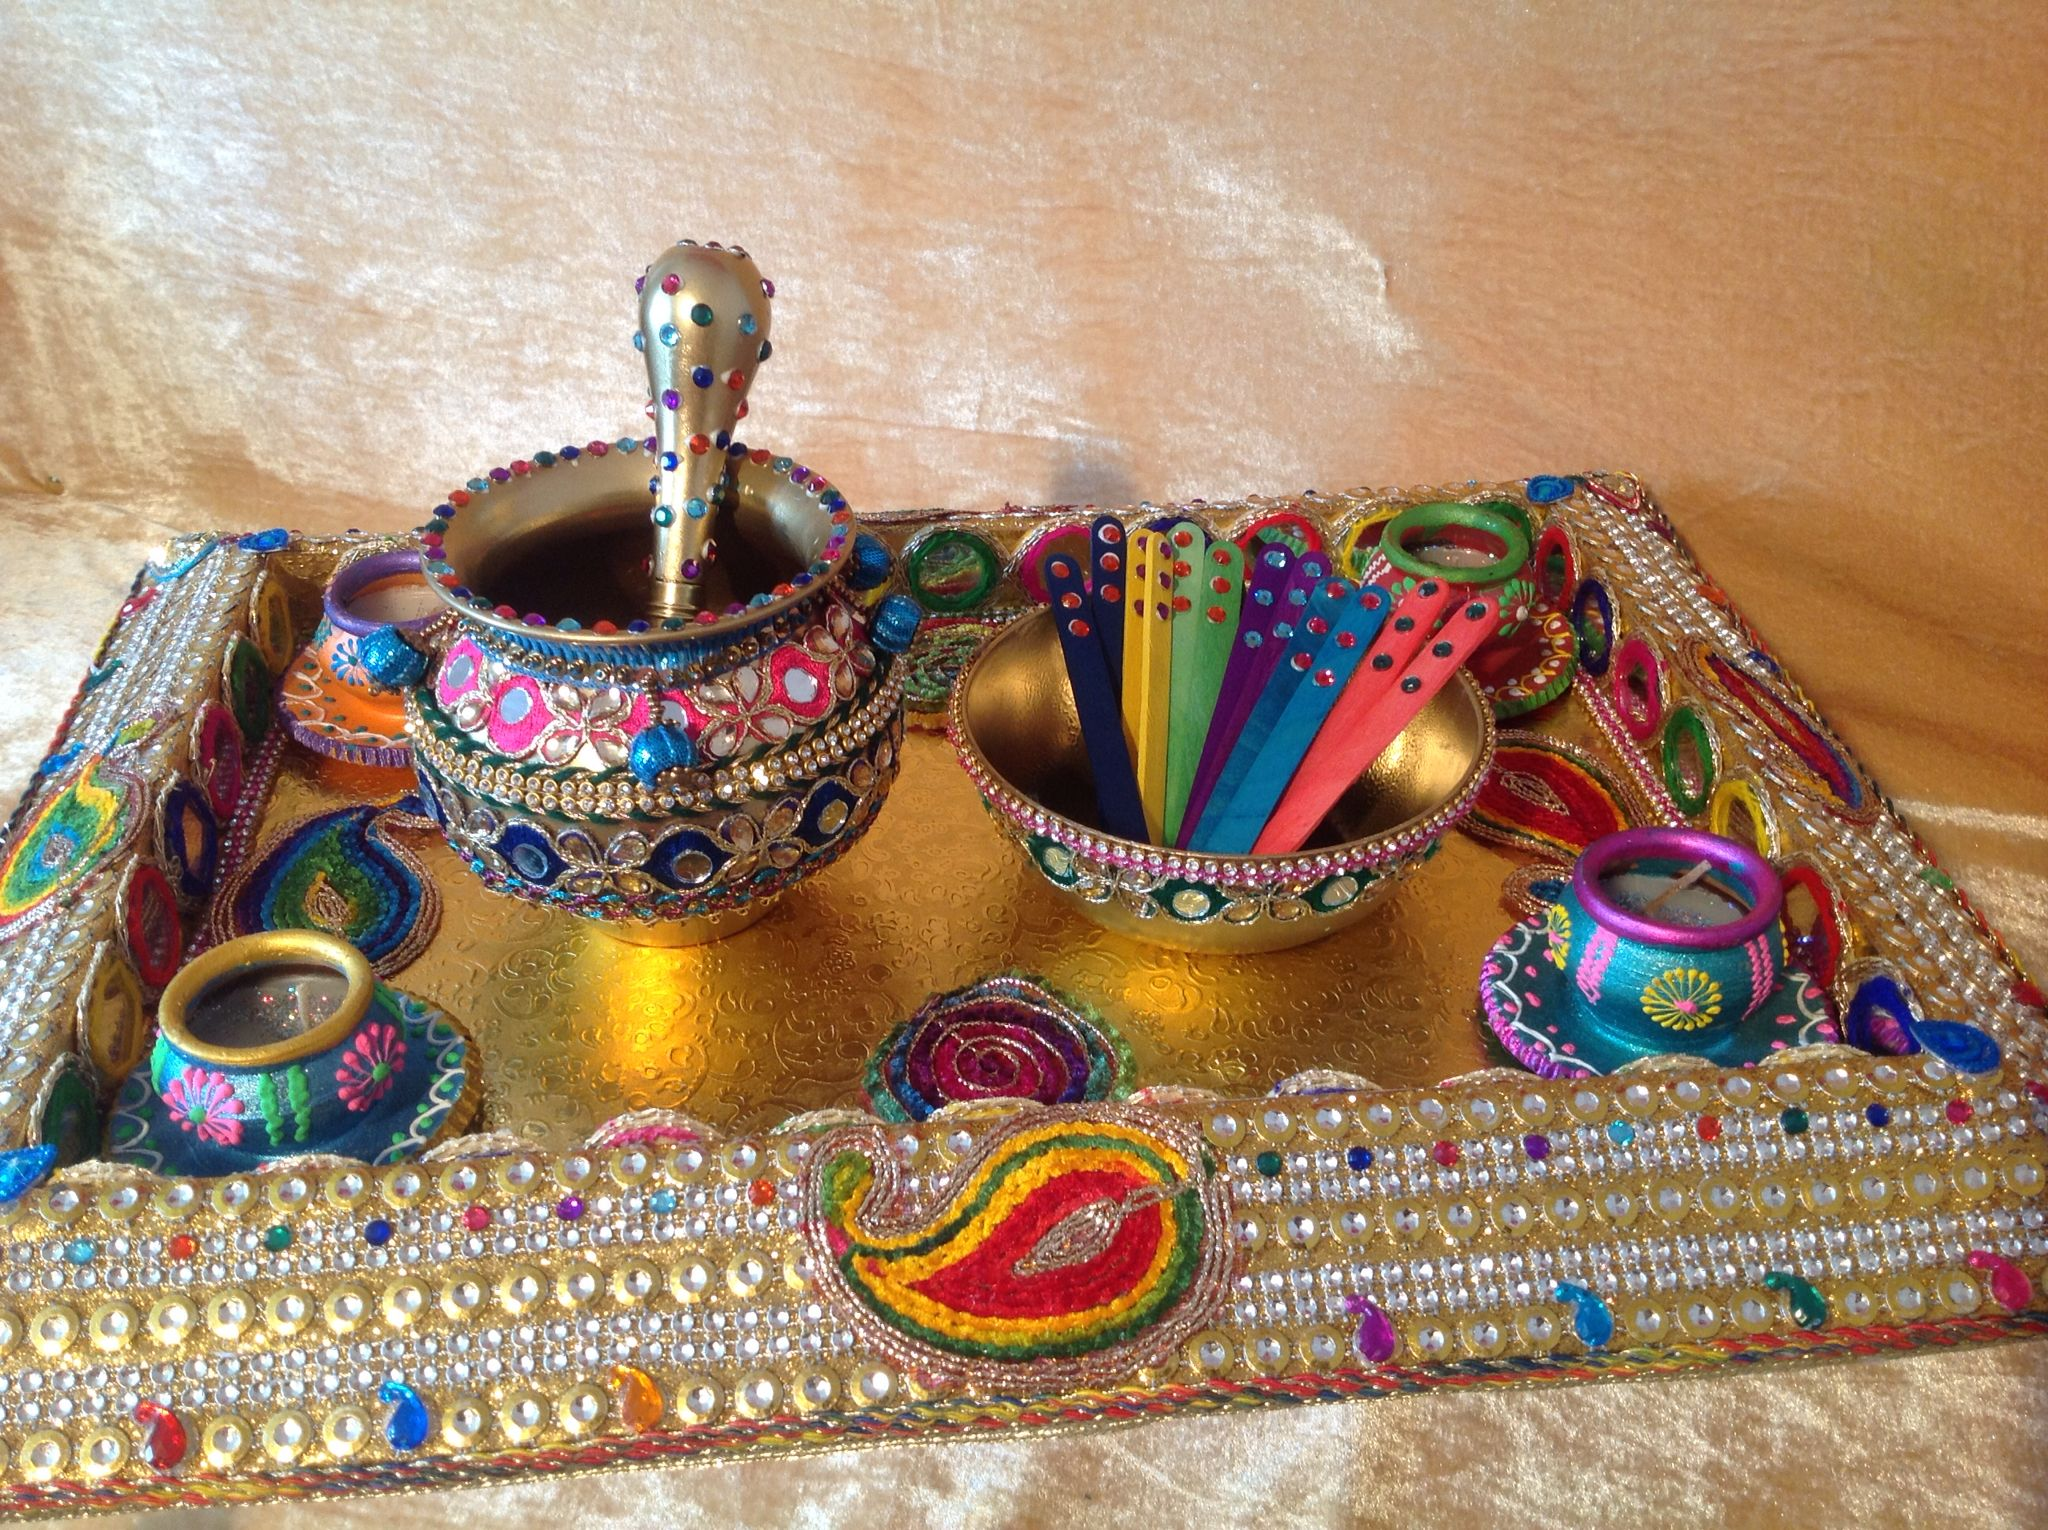 Mehndi Decoration Trays : The multicoloured mehndi tray with oil and pots see my